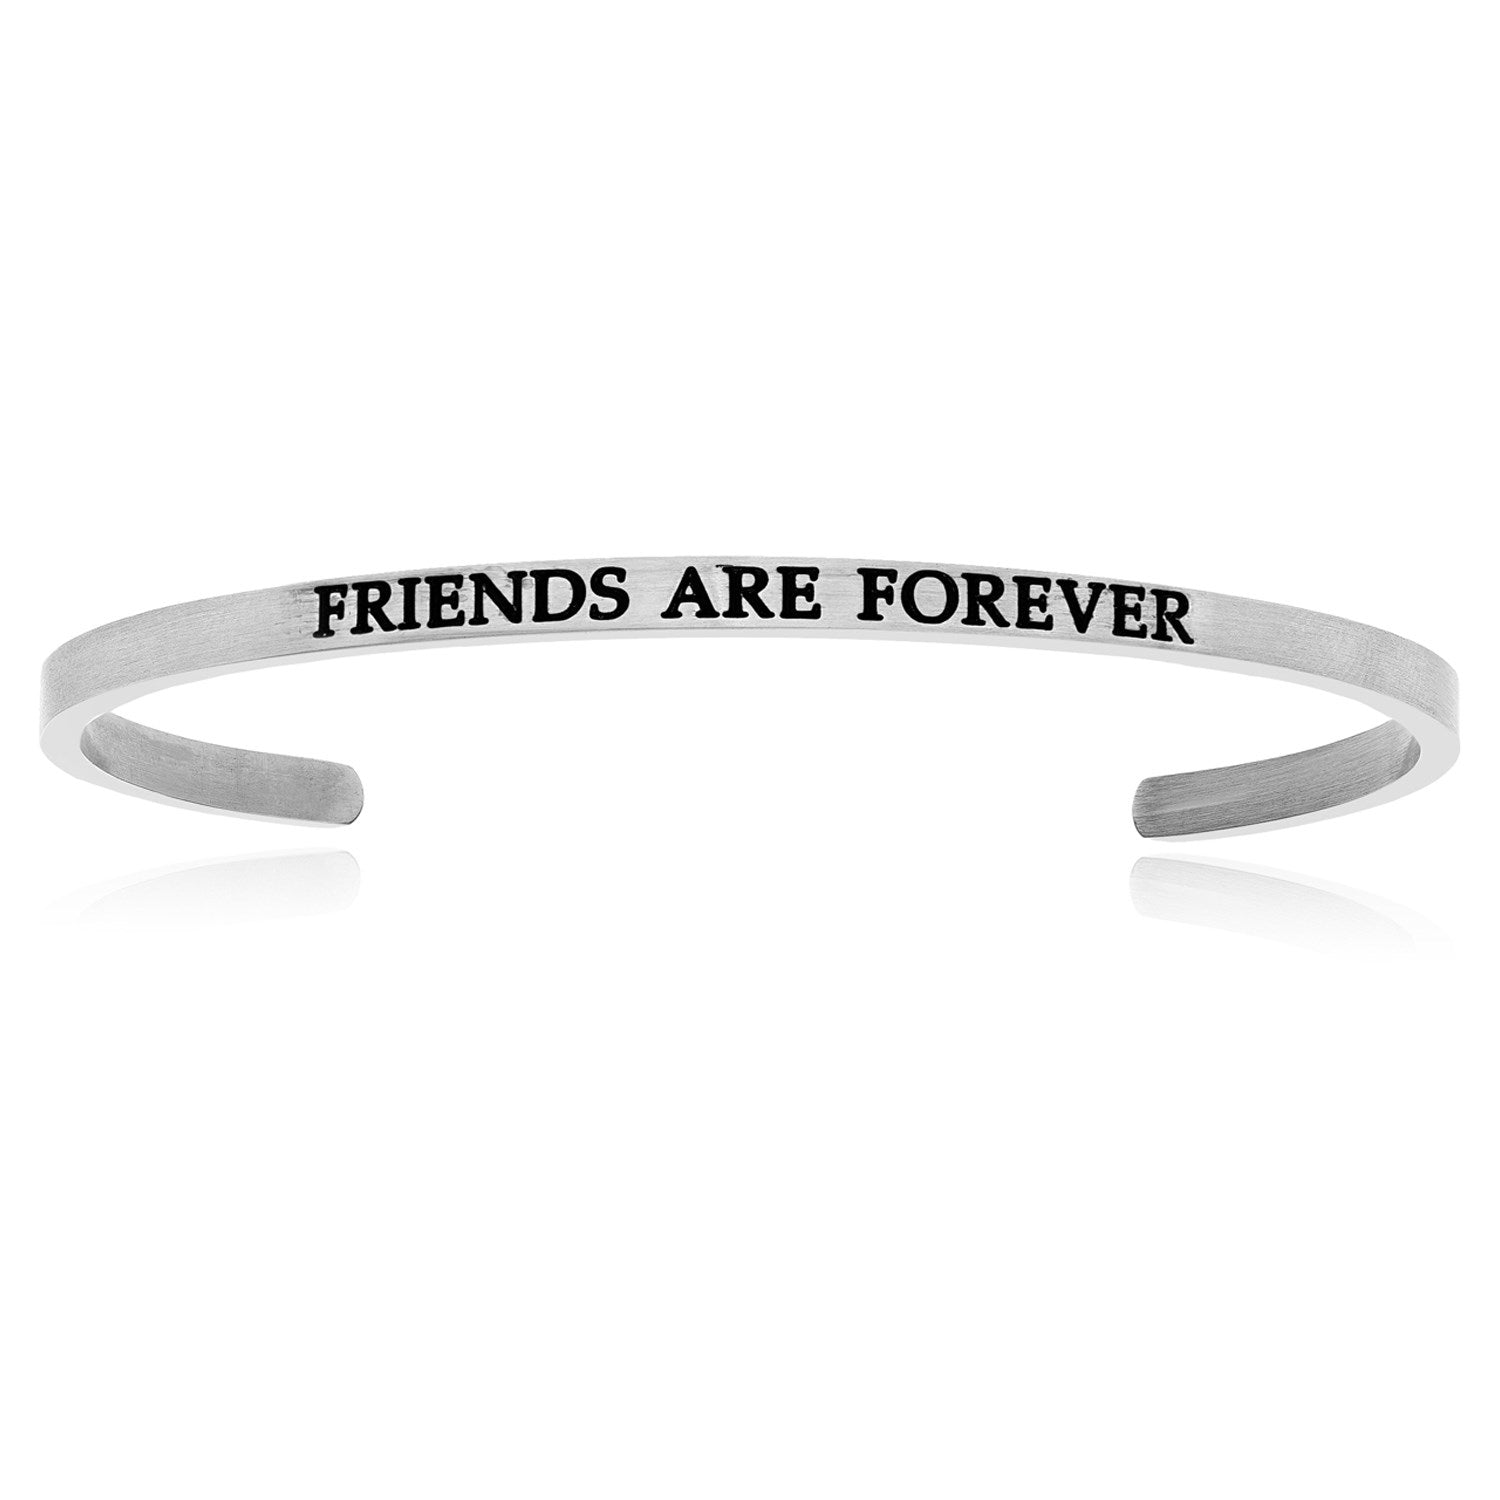 Stainless Steel Friends Are Forever Cuff Bracelet